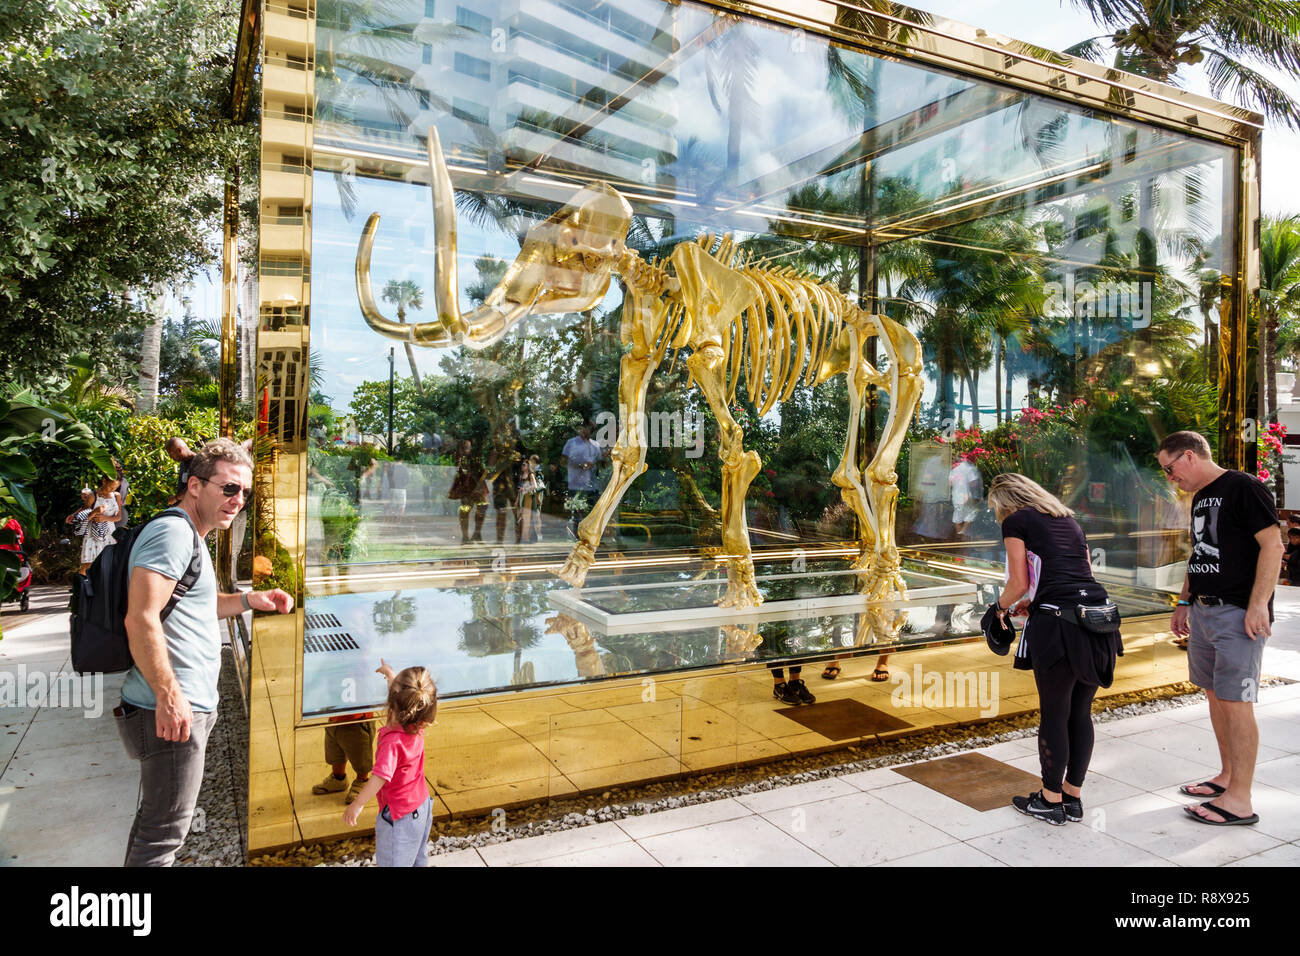 Miami Beach Florida Collins Avenue Faena hotel luxury district Art Basel Weekend Gone but not Forgotten by Damien Hirst golden wooly mammoth sculpture - Stock Image